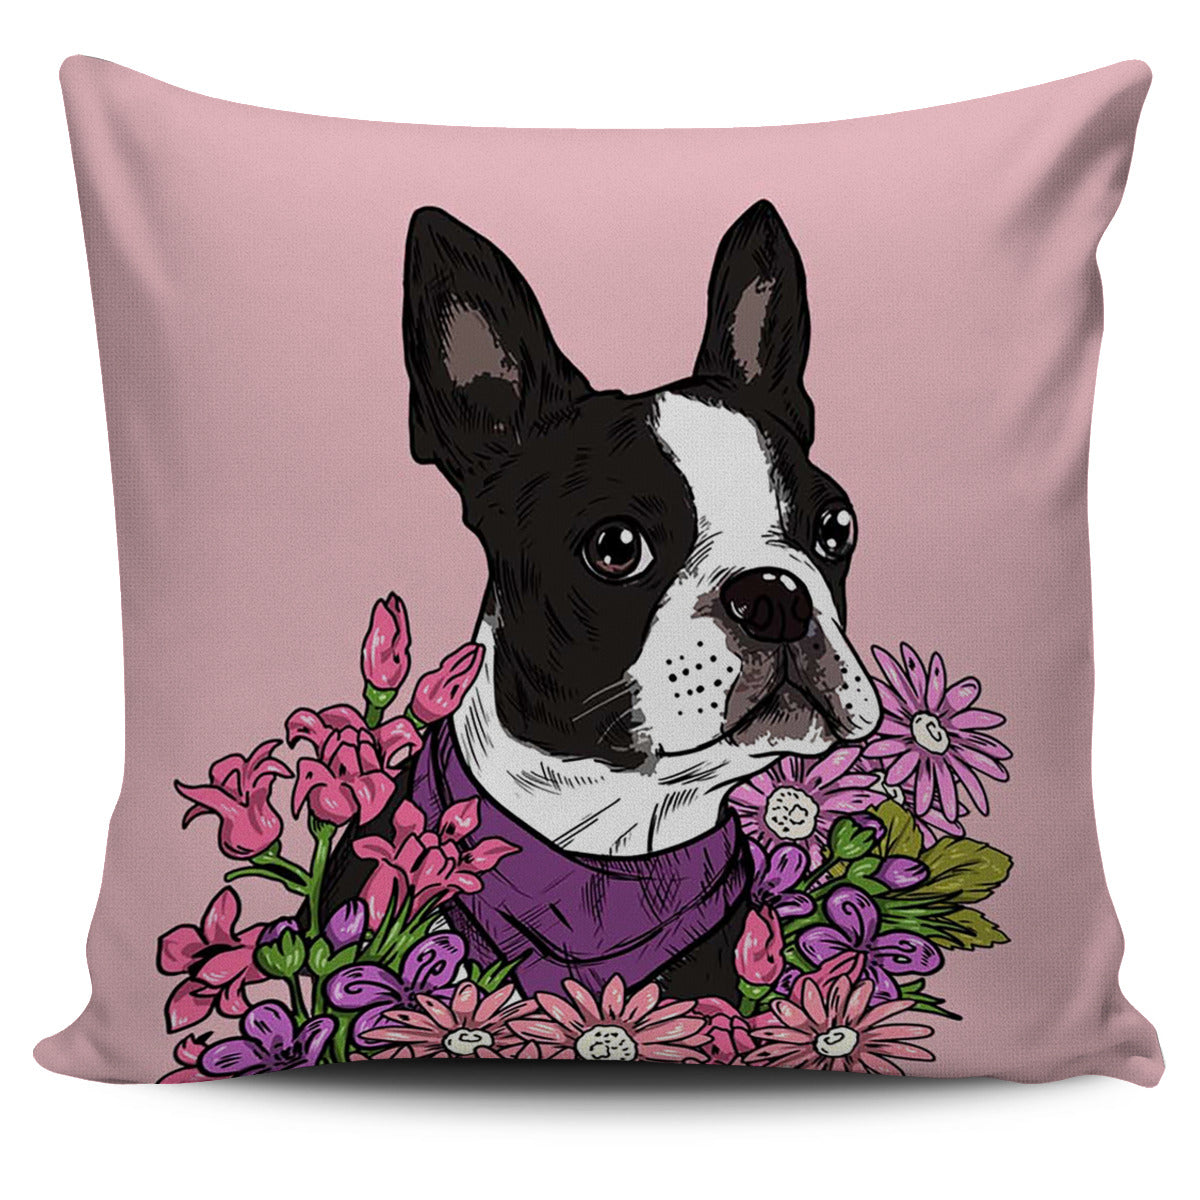 Illustrated Boston Terrier Pillow Cover – Groove Bags